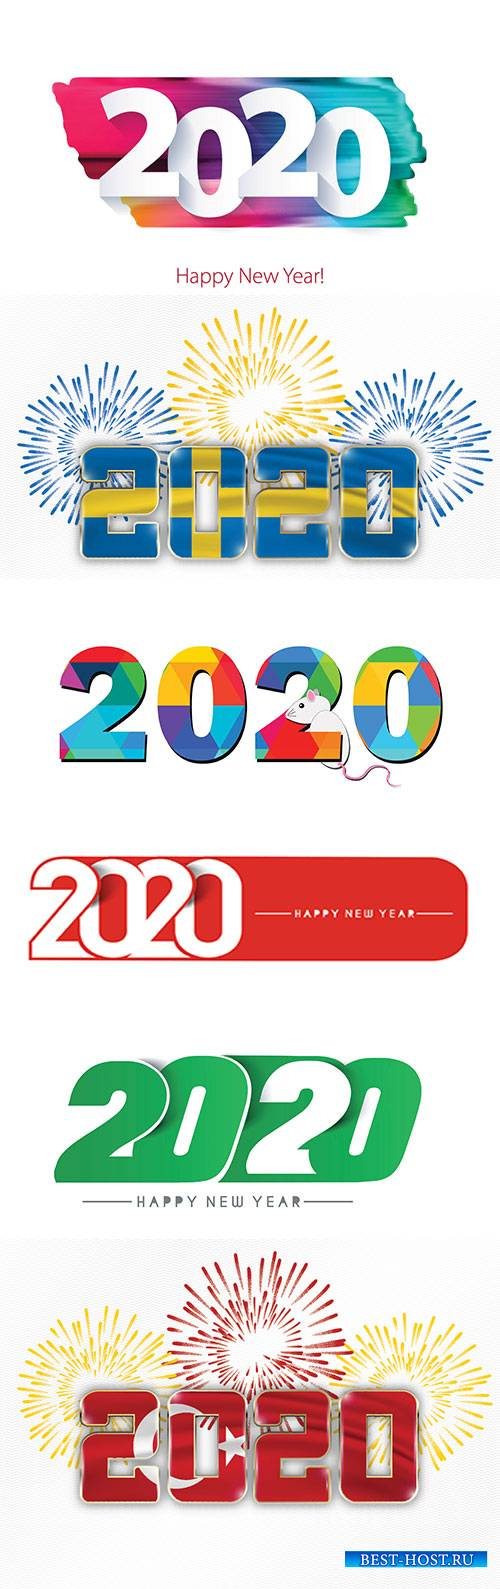 Numbers of new year 2020